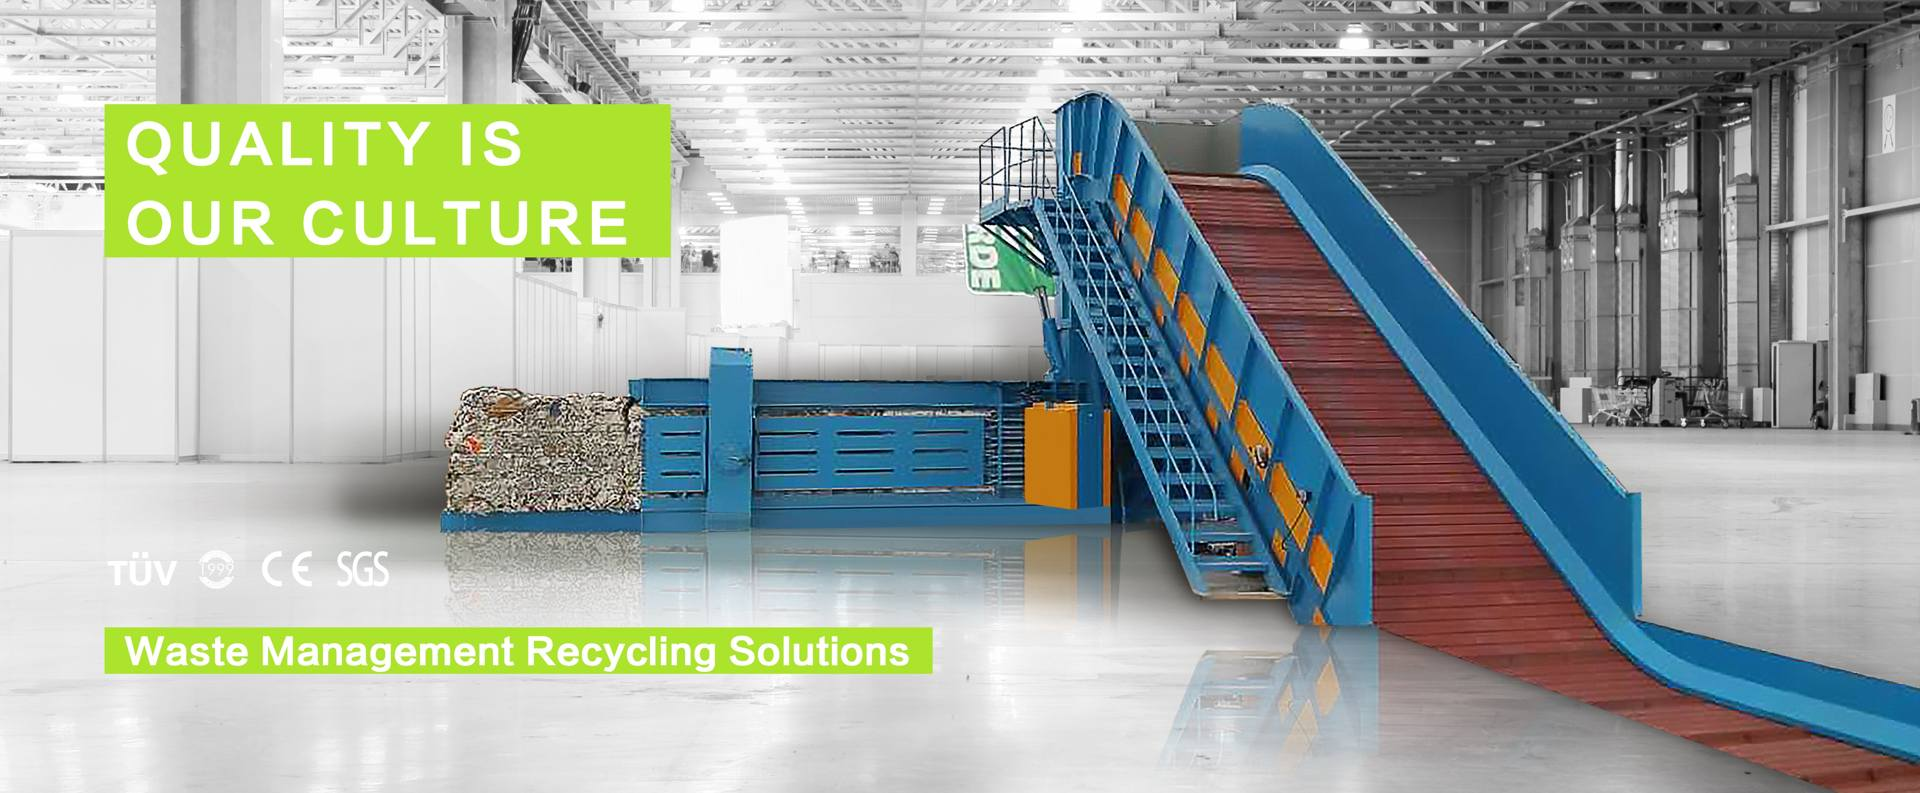 Waste Management Recycling Solution